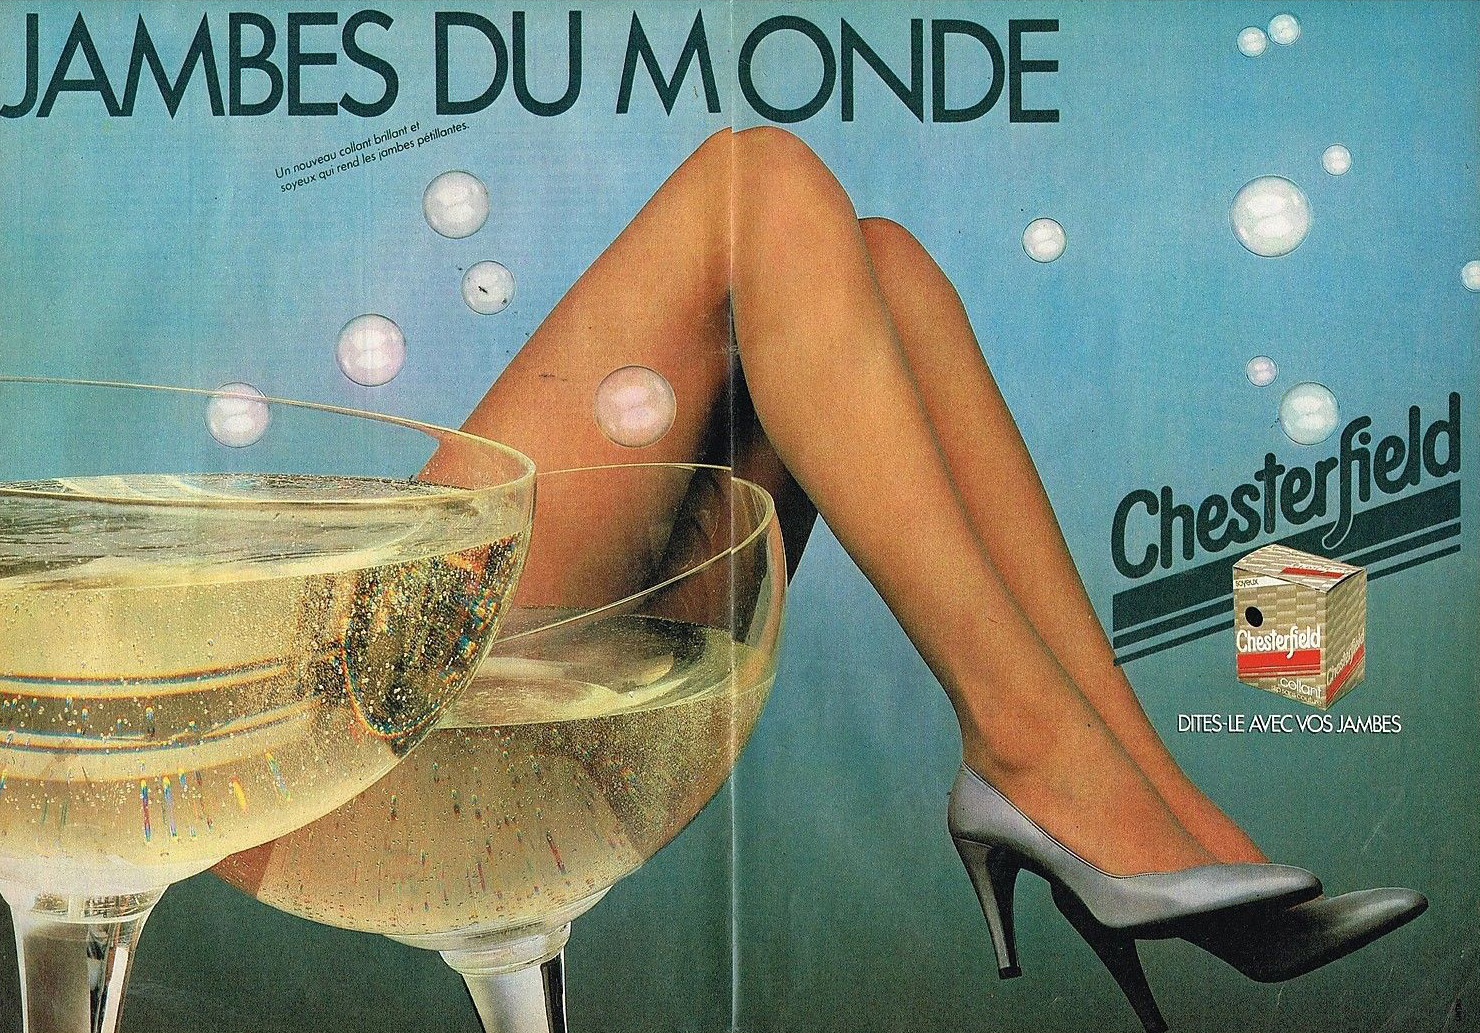 Publicité Advertising 1981 Les Bas et collants Chesterfield